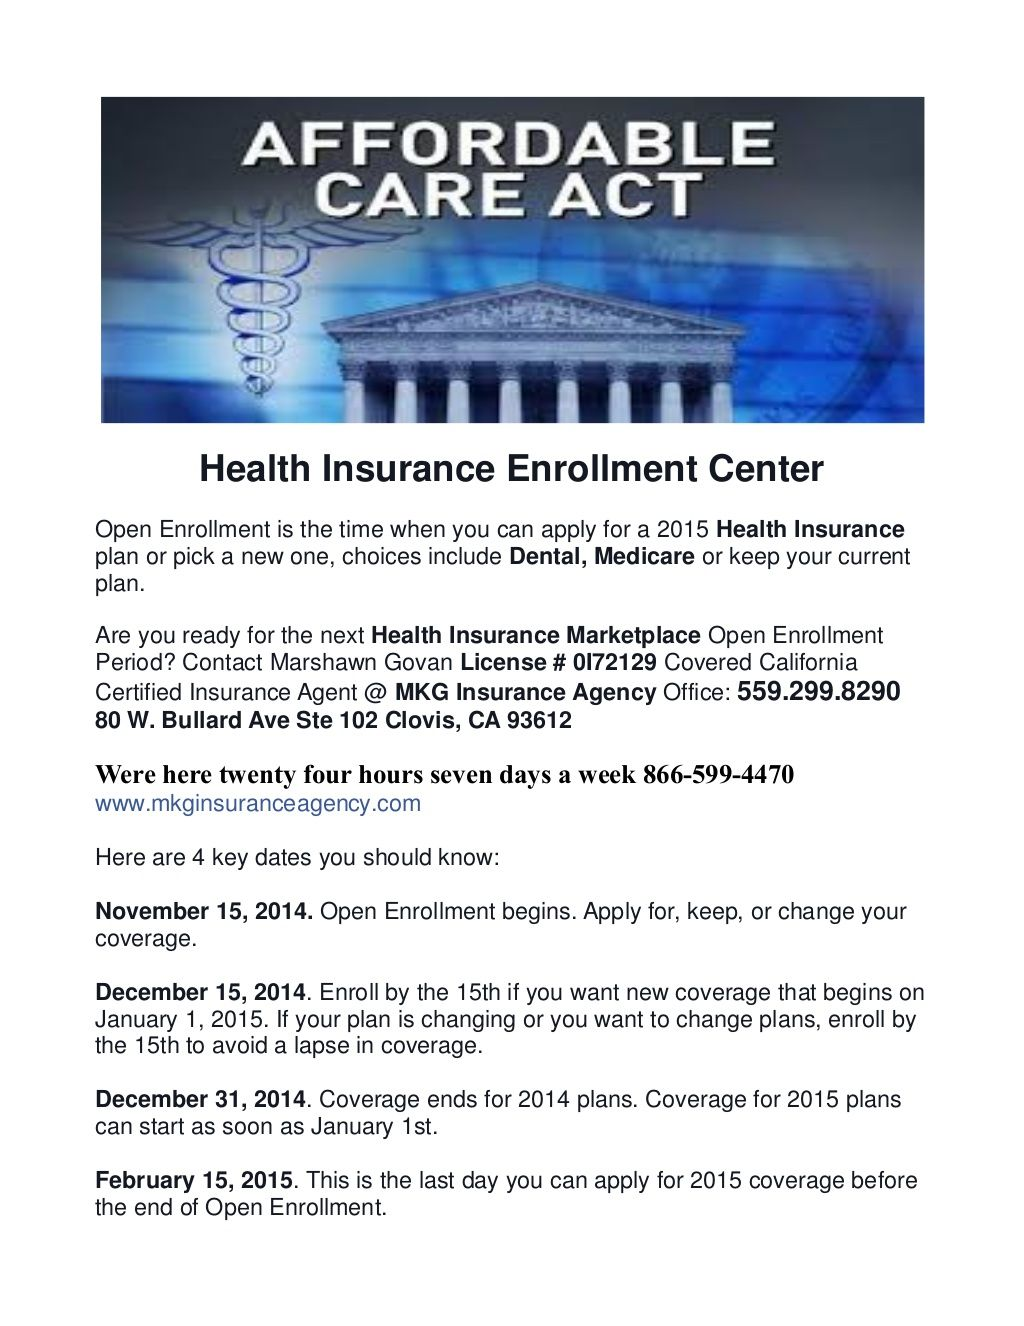 Affordable Care Act Health Insurance Enrollment Center By Mkg Insurance Agency Health Insurance Enrollment Marketplace Health Insurance Health Insurance Plans